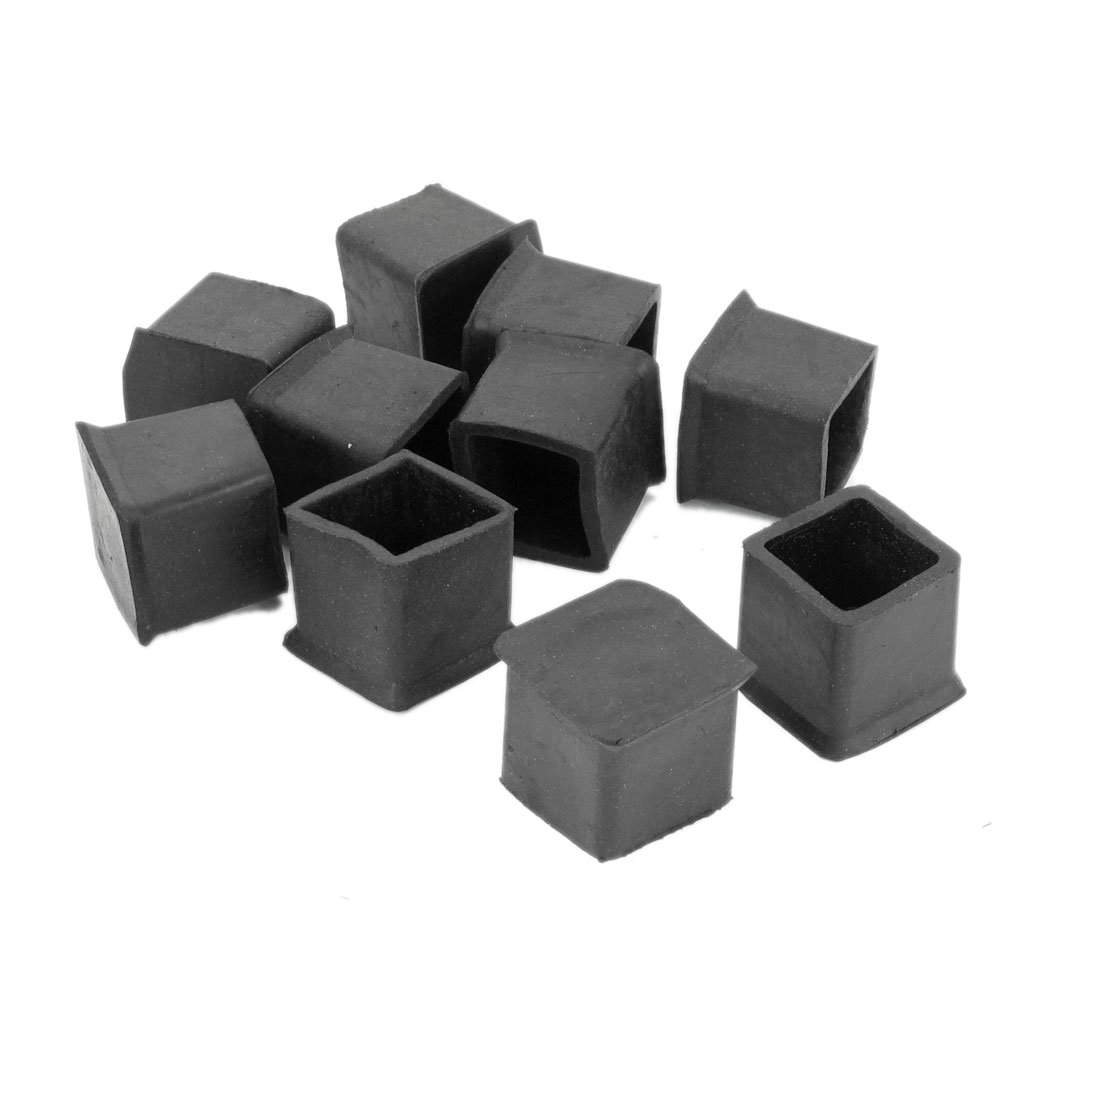 Furniture Chair Leg Protectors 10 Pcs Rubber 25mm X 25mm Furniture Chair Legs Covers